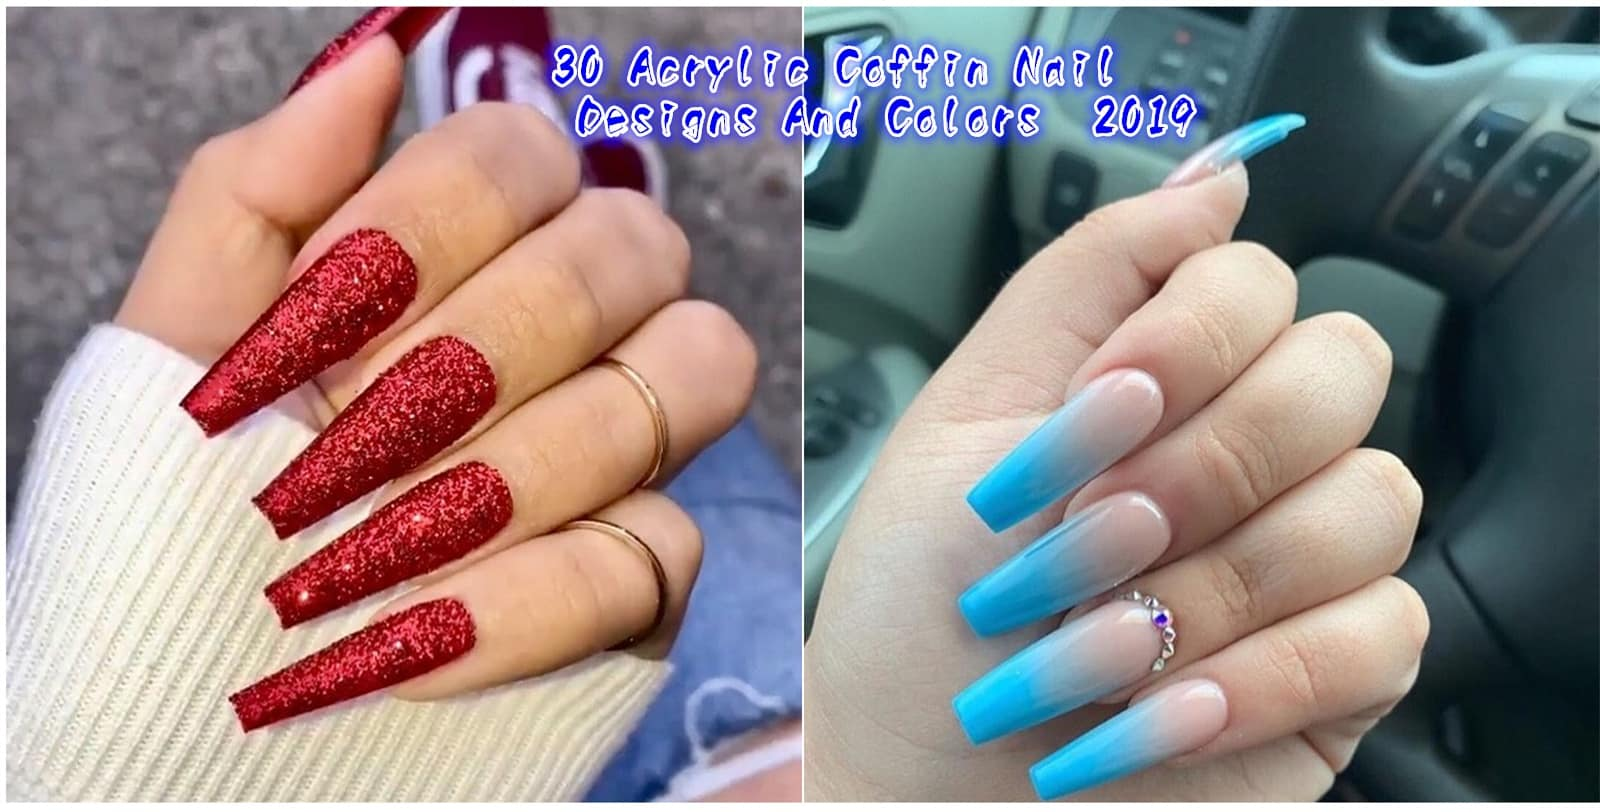 30 tylish Acrylic Coffin Nail Designs And Colors 2019 - 30 Stylish Acrylic Coffin Nail Designs And Colors 2019